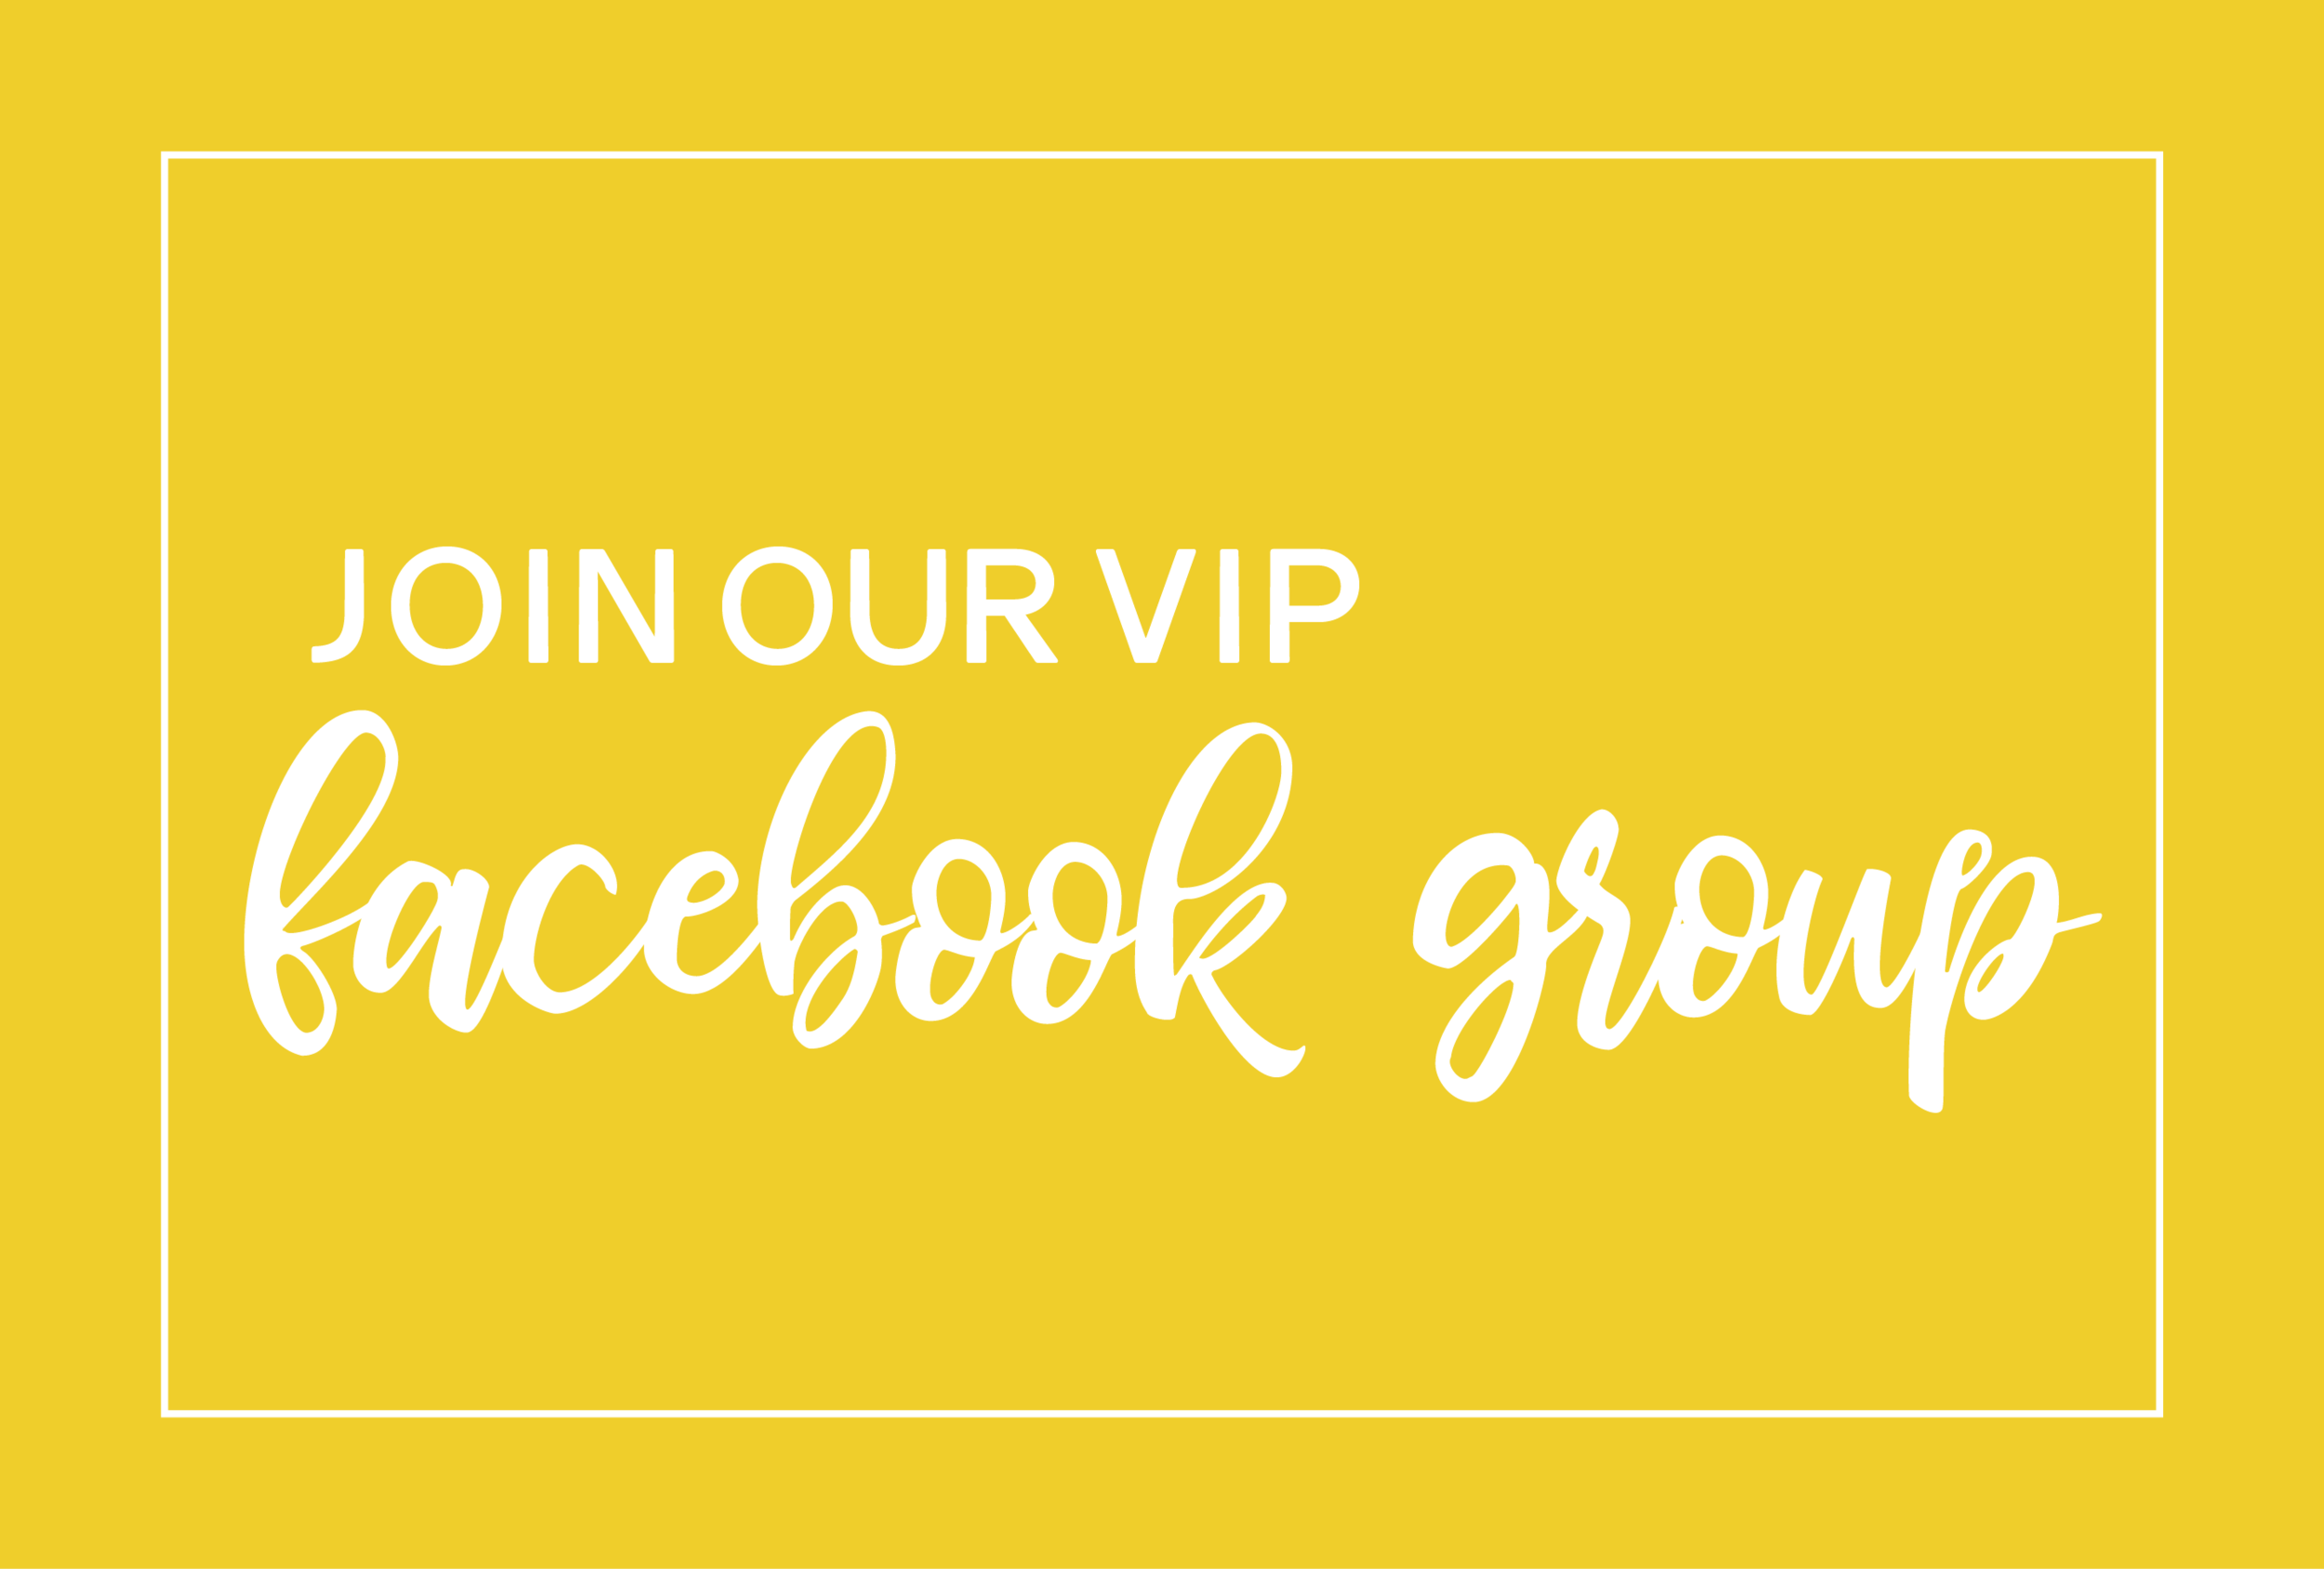 Koket Boutique: VIP Shopping Rewards Facebook Group